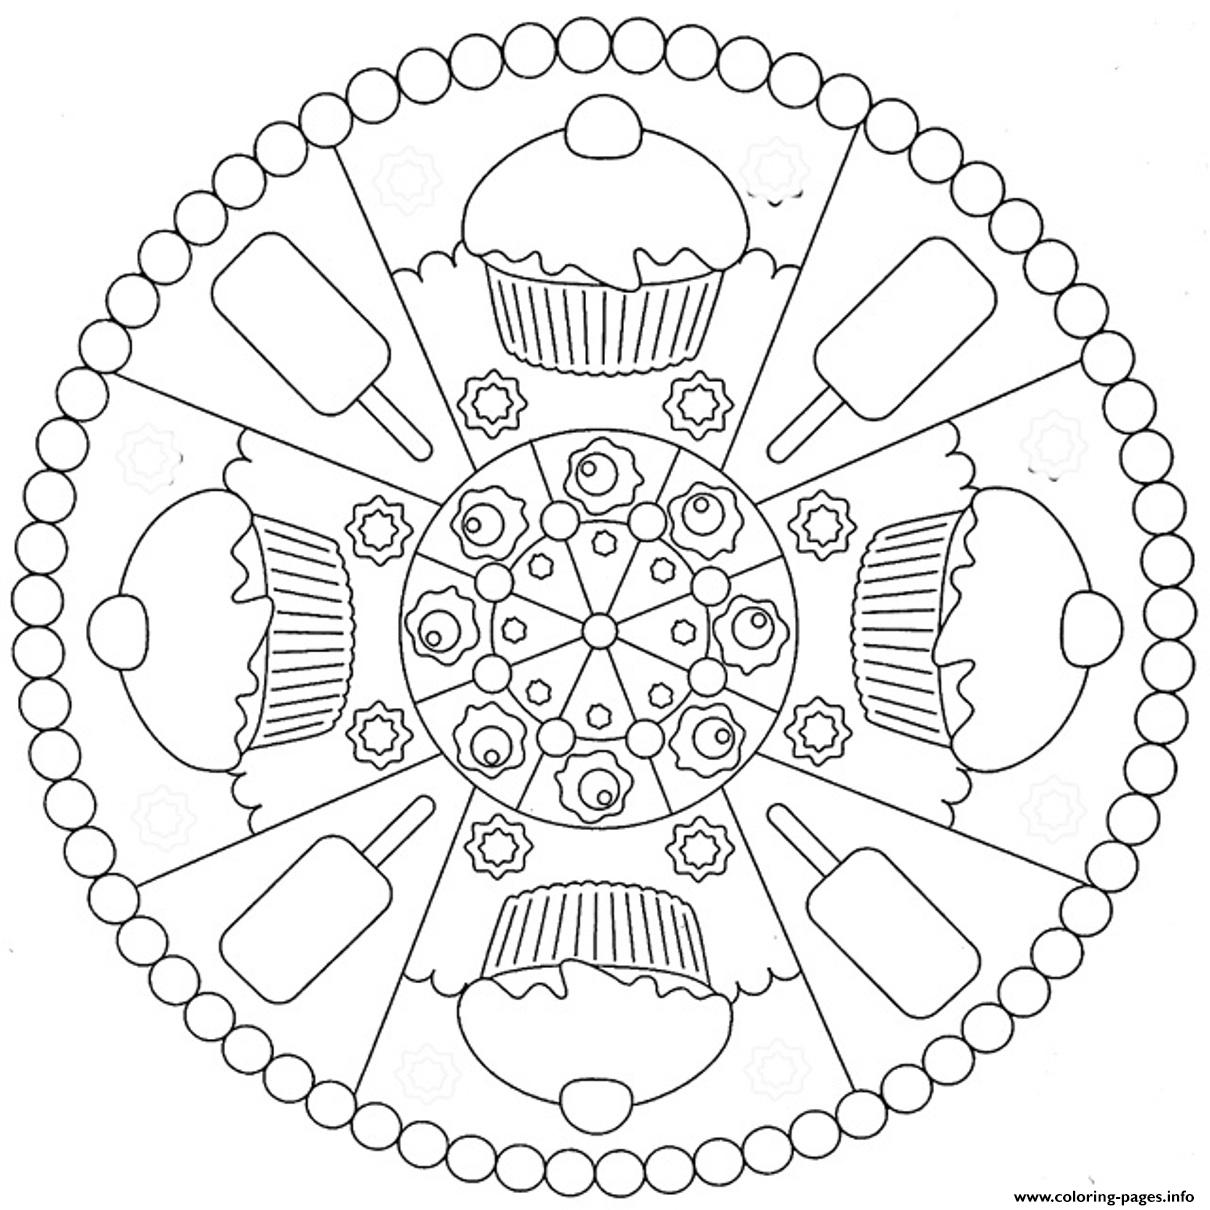 Cookies and ice cream mandala s31a7 coloring pages printable